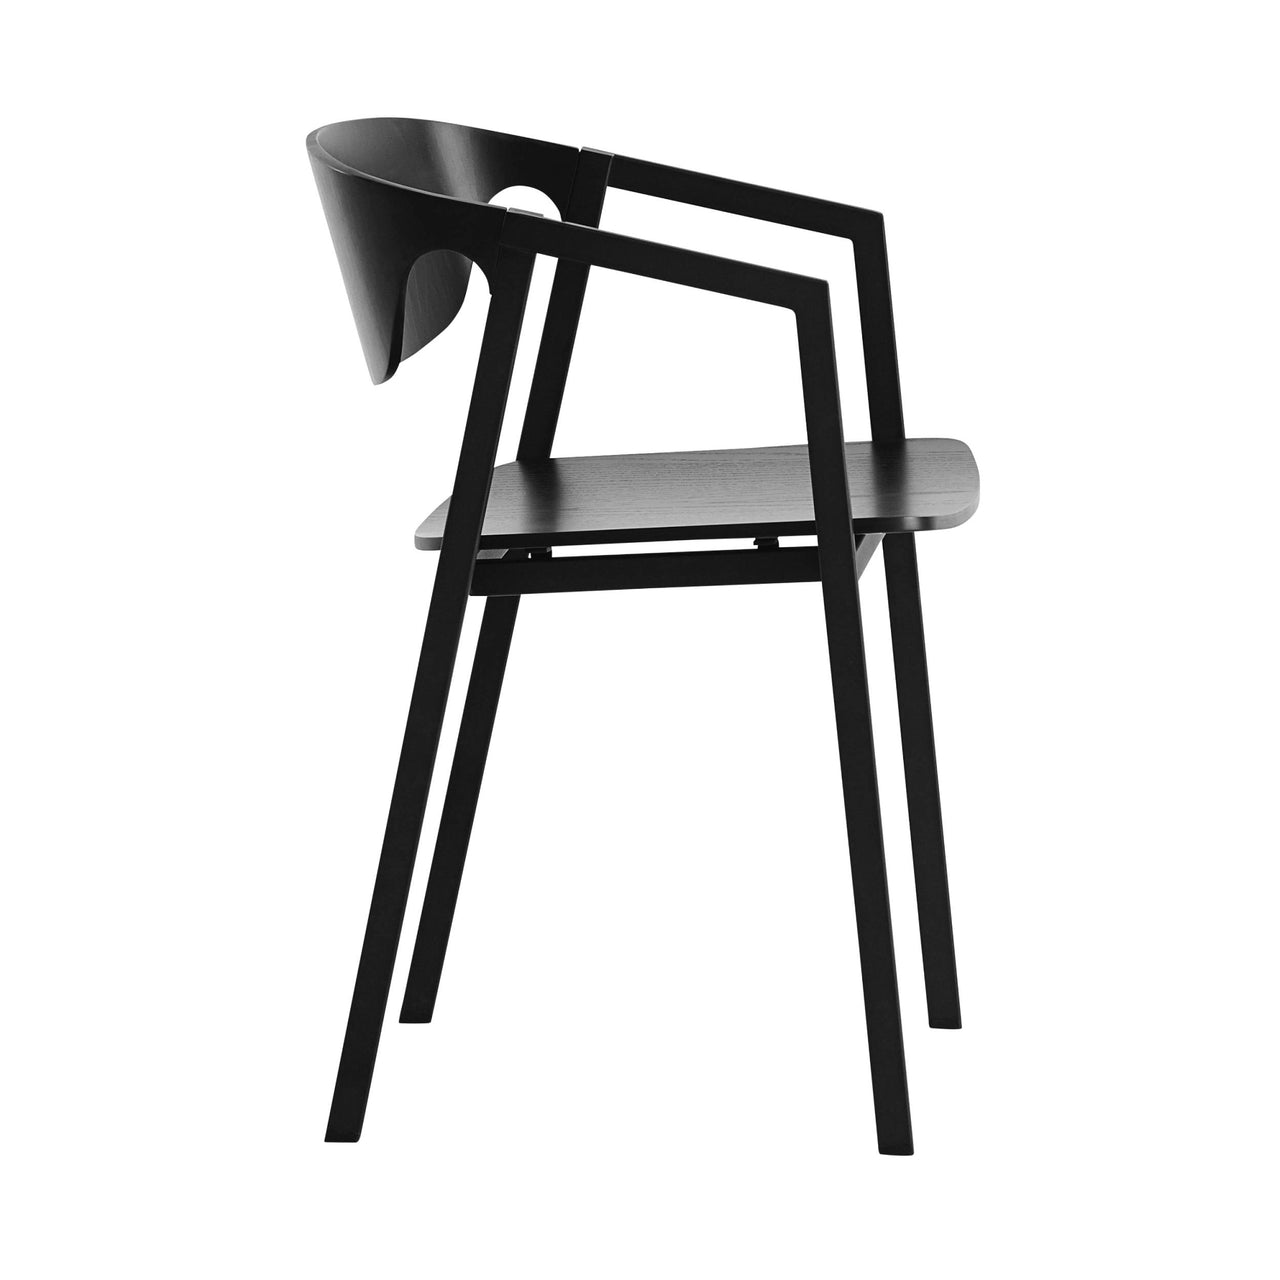 S.A.C. Dining Chair: Chair